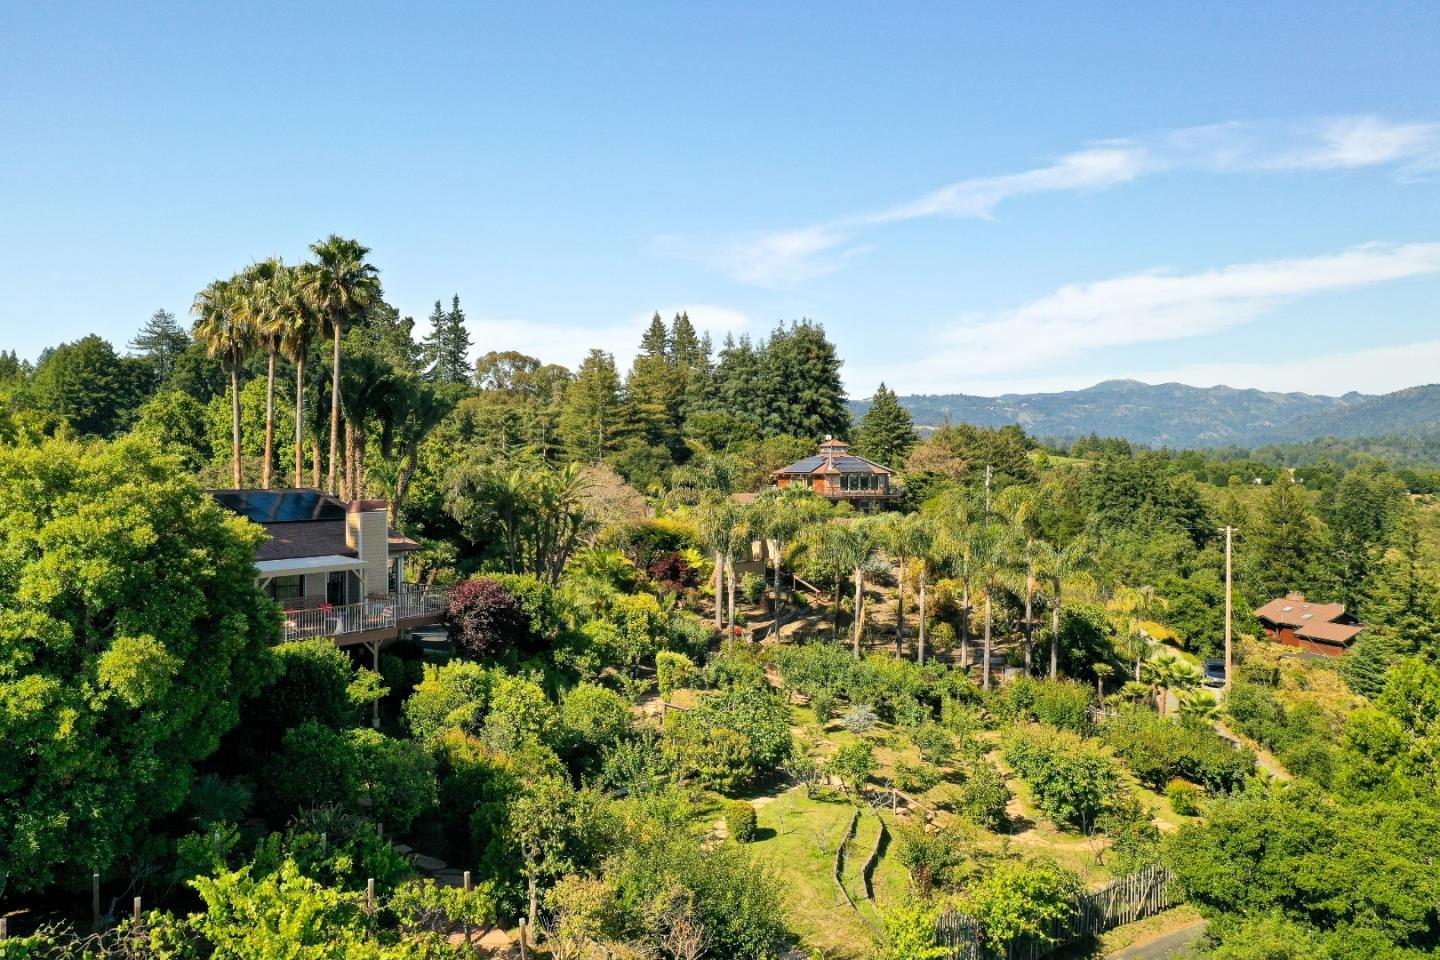 """You can't get much closer to perfection than top of the world views, 2.9 acres of south-facing gardens, a world-class observatory, and meticulously remodeled home. """"Casa de Palmas"""", named for the rare and exotic palms throughout the property and lining the gated driveway, is a horticultural oasis of subtropicals, ornamentals, fruits, veggies, flowers and ponds. Sunset Zone 16 ranks among the best in the world for gardeners, as evidenced by the numerous varieties of apples, pears, citrus, cherimoyas, macadamias, and much more. Panoramic views stretch to the ocean w/ample deck and patio space to enjoy it. One-level design, w/walls of windows and high ceilings, generous game room, garage and storage downstairs. Meticulous attention to detail and quality of materials everywhere you turn. Detached building w/retractable roof has endless possibilities for hobby/workspace. A peaceful oasis, midway between Los Gatos and Santa Cruz, 10 mins off Hwy 17, in top-rated Happy Valley School District"""